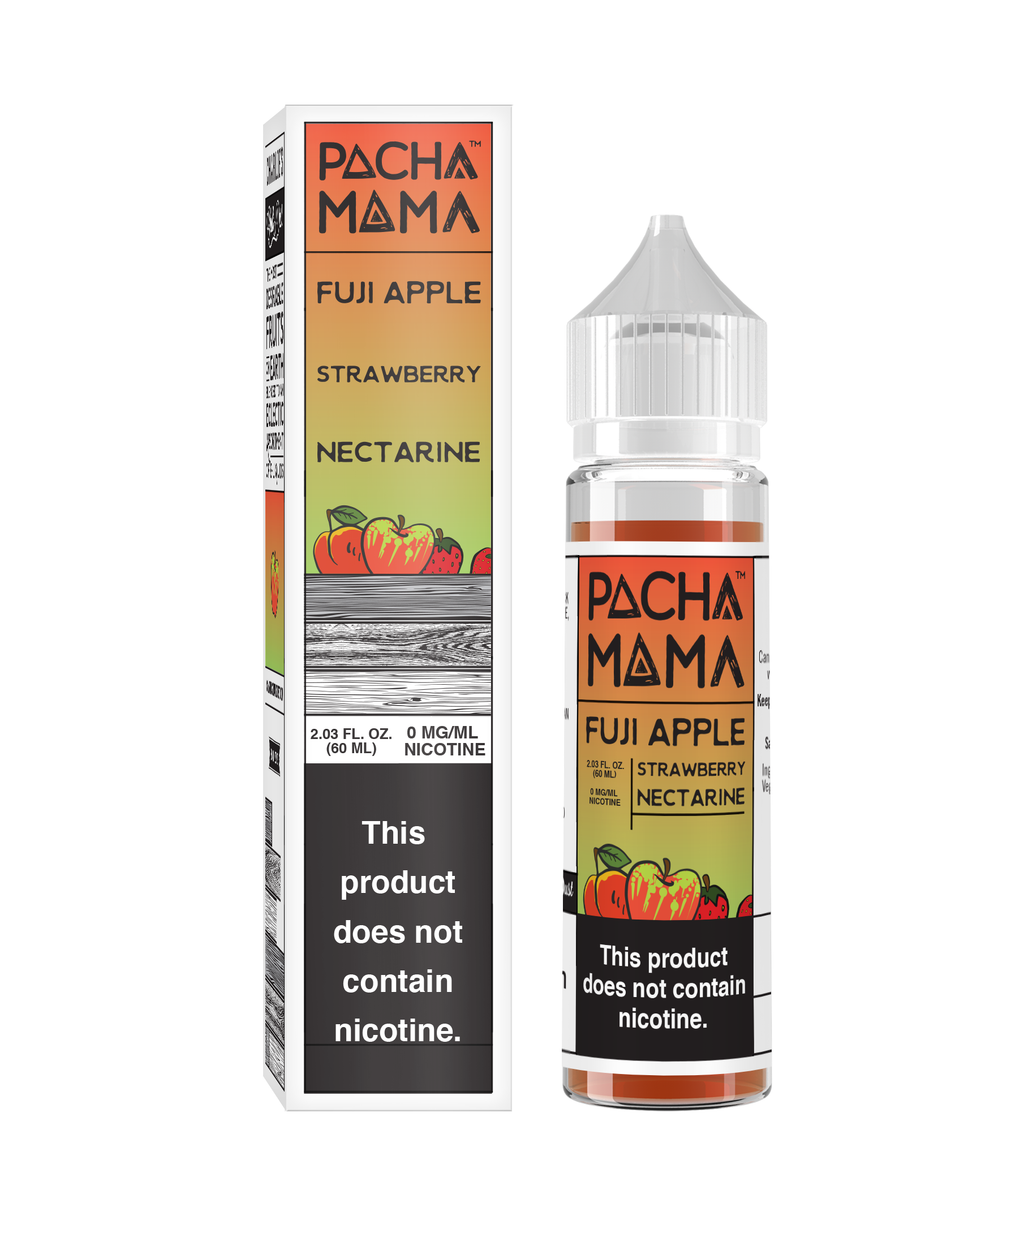 PACHA MAMA FUJI APPLE STRAWBERRY NECTARINE 60ML